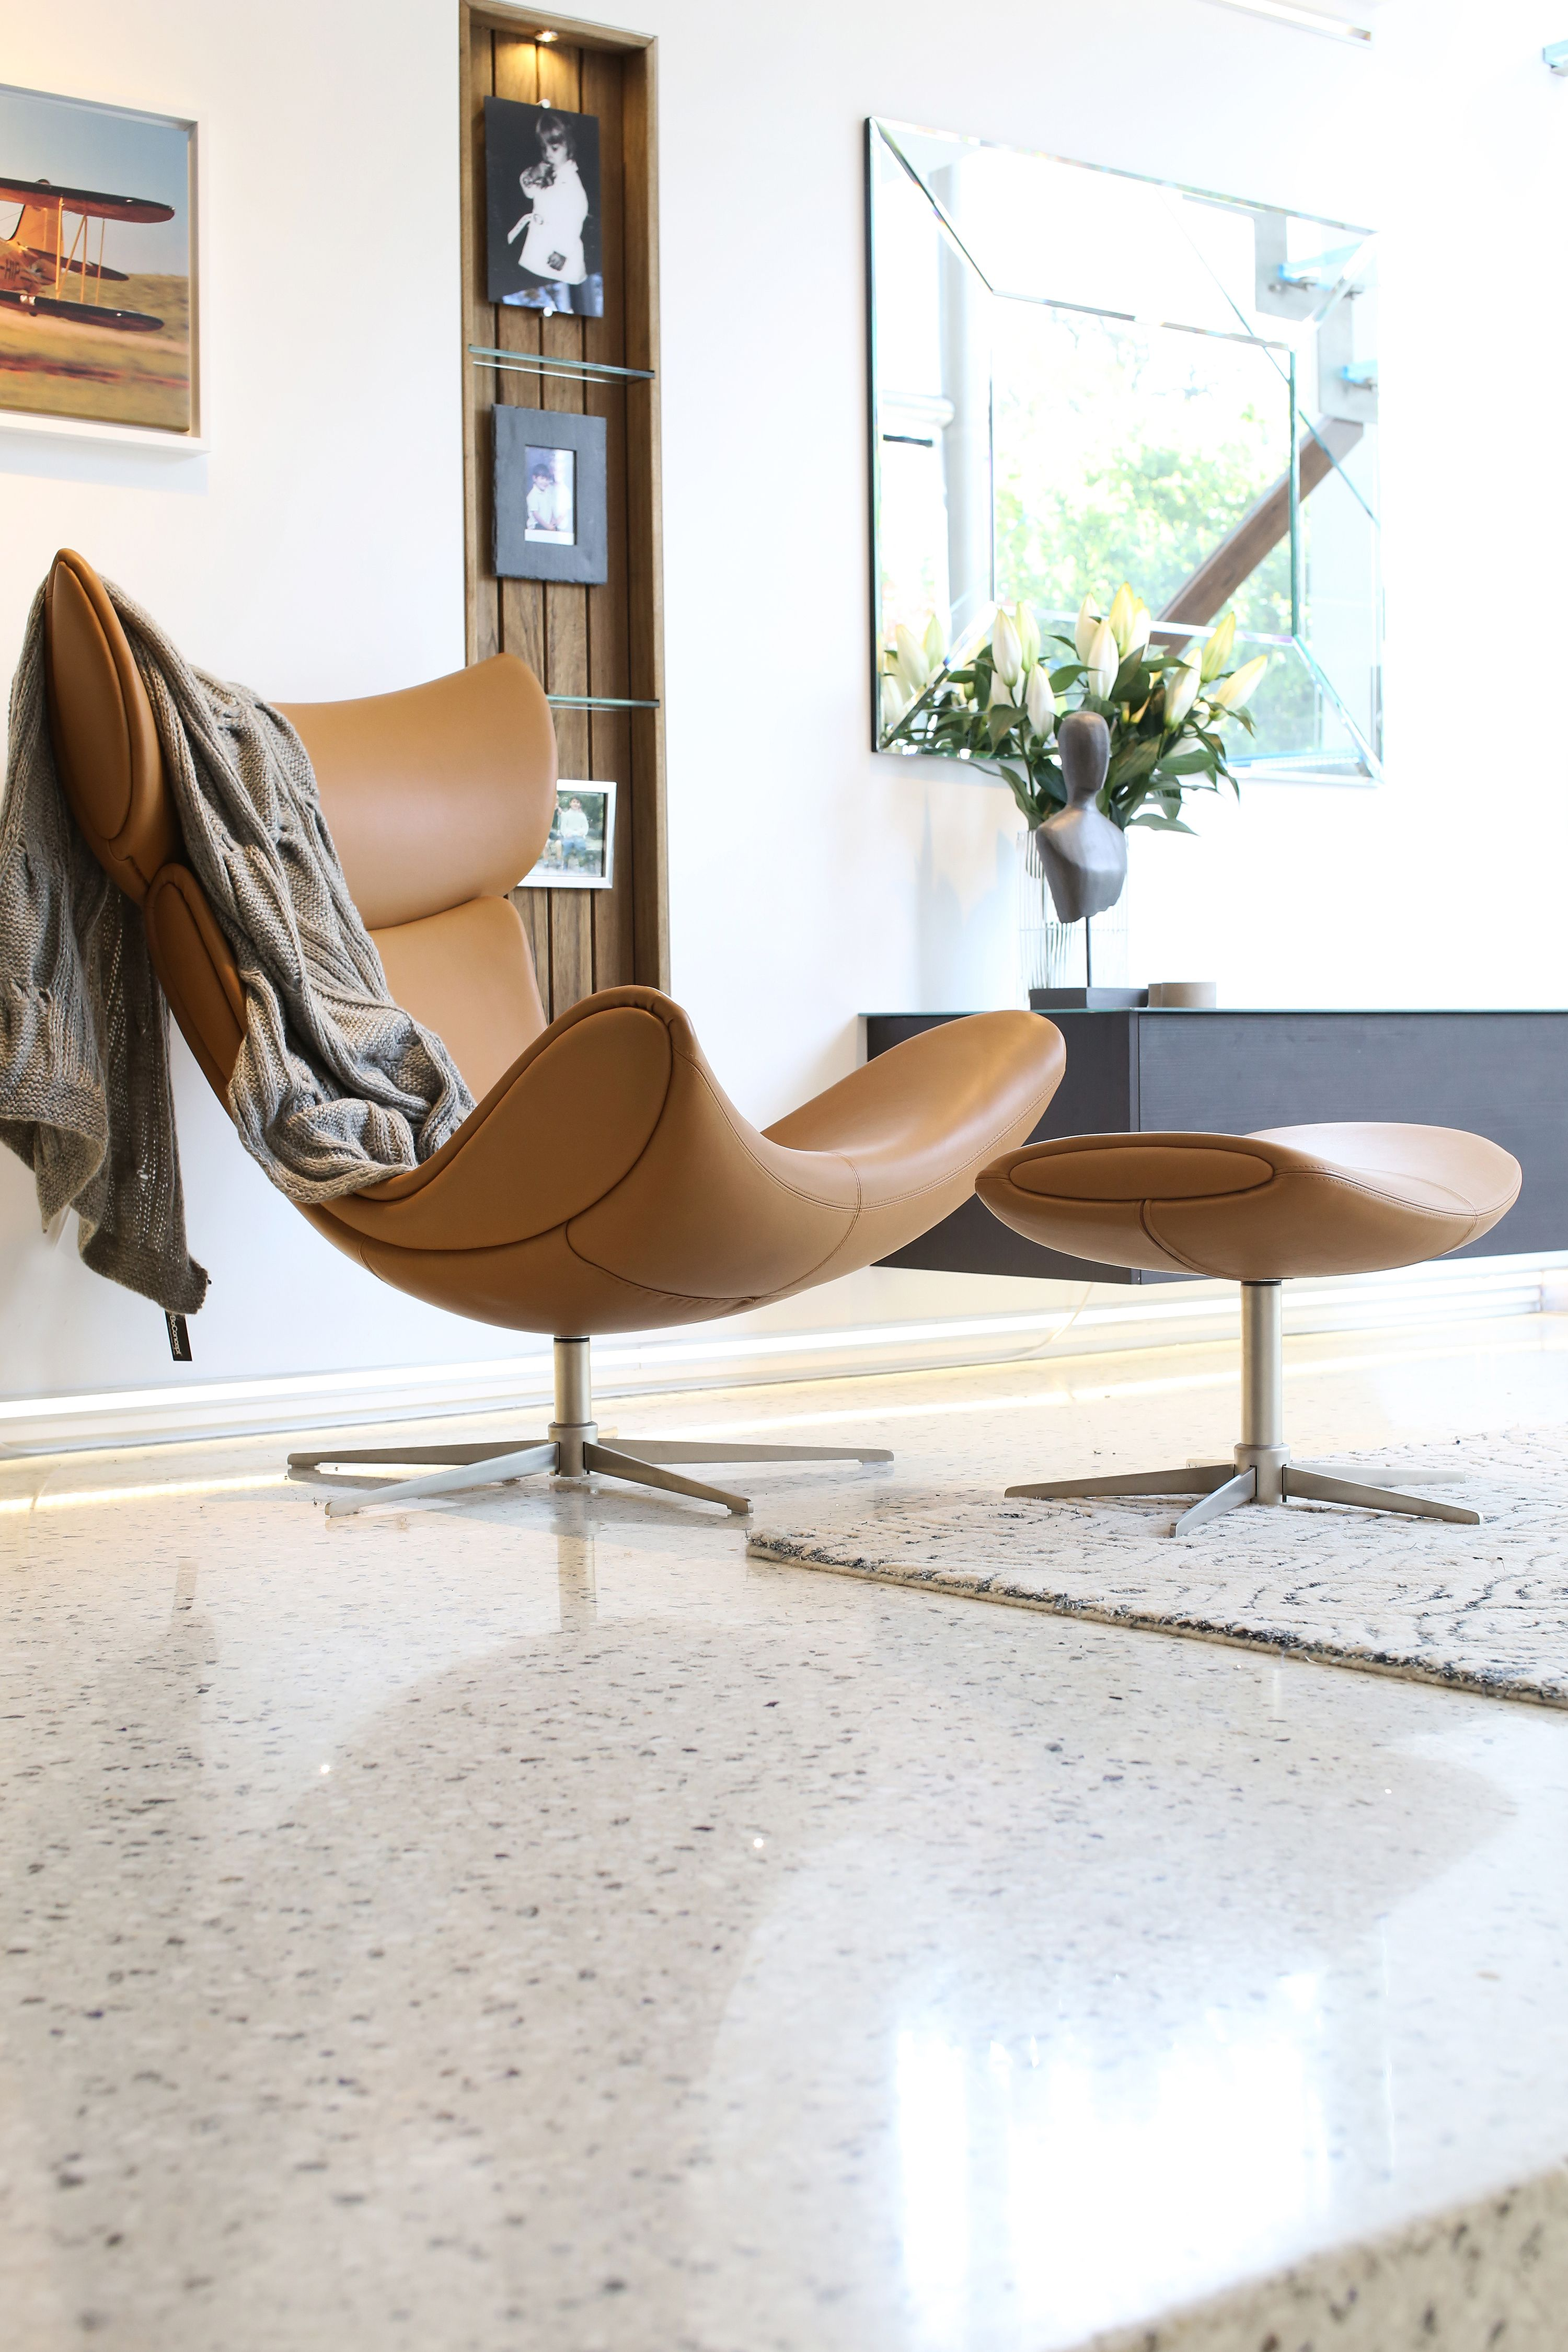 Design Chairs For Living Room Imola Living Room Chair In Beautiful Leather  Boconcept's